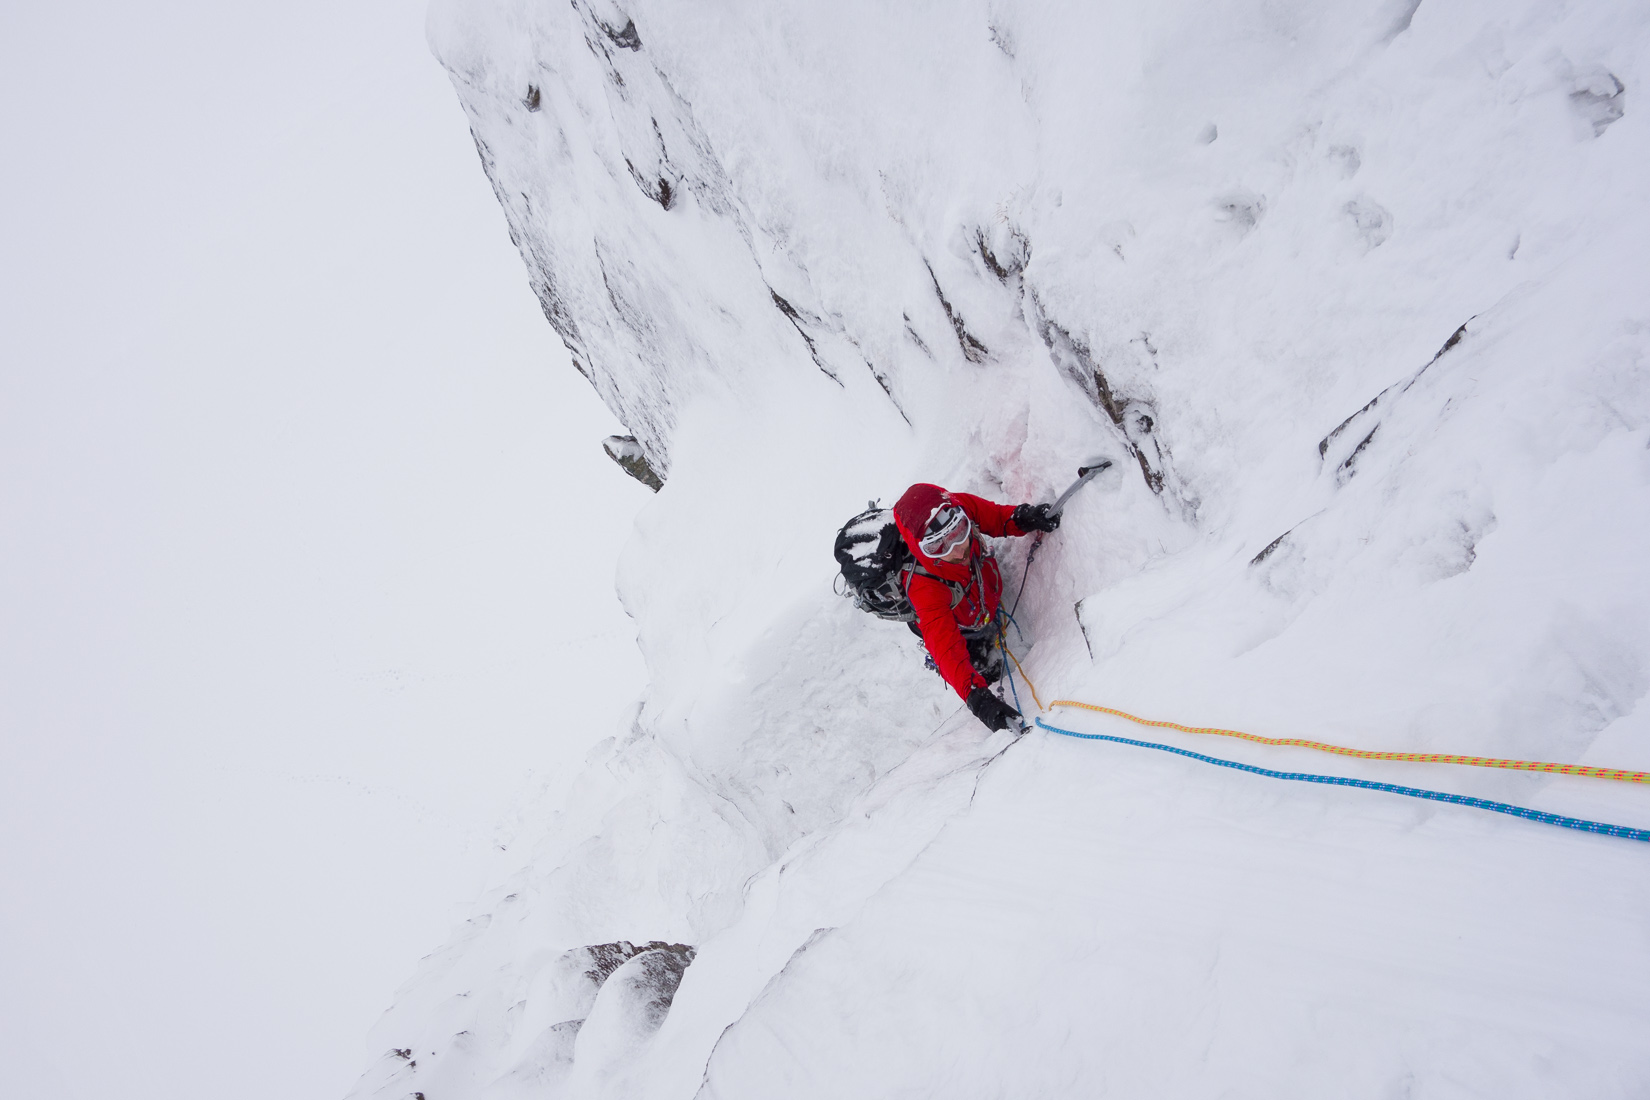 Brilliant climbing the first pitch of Raeburn's Route